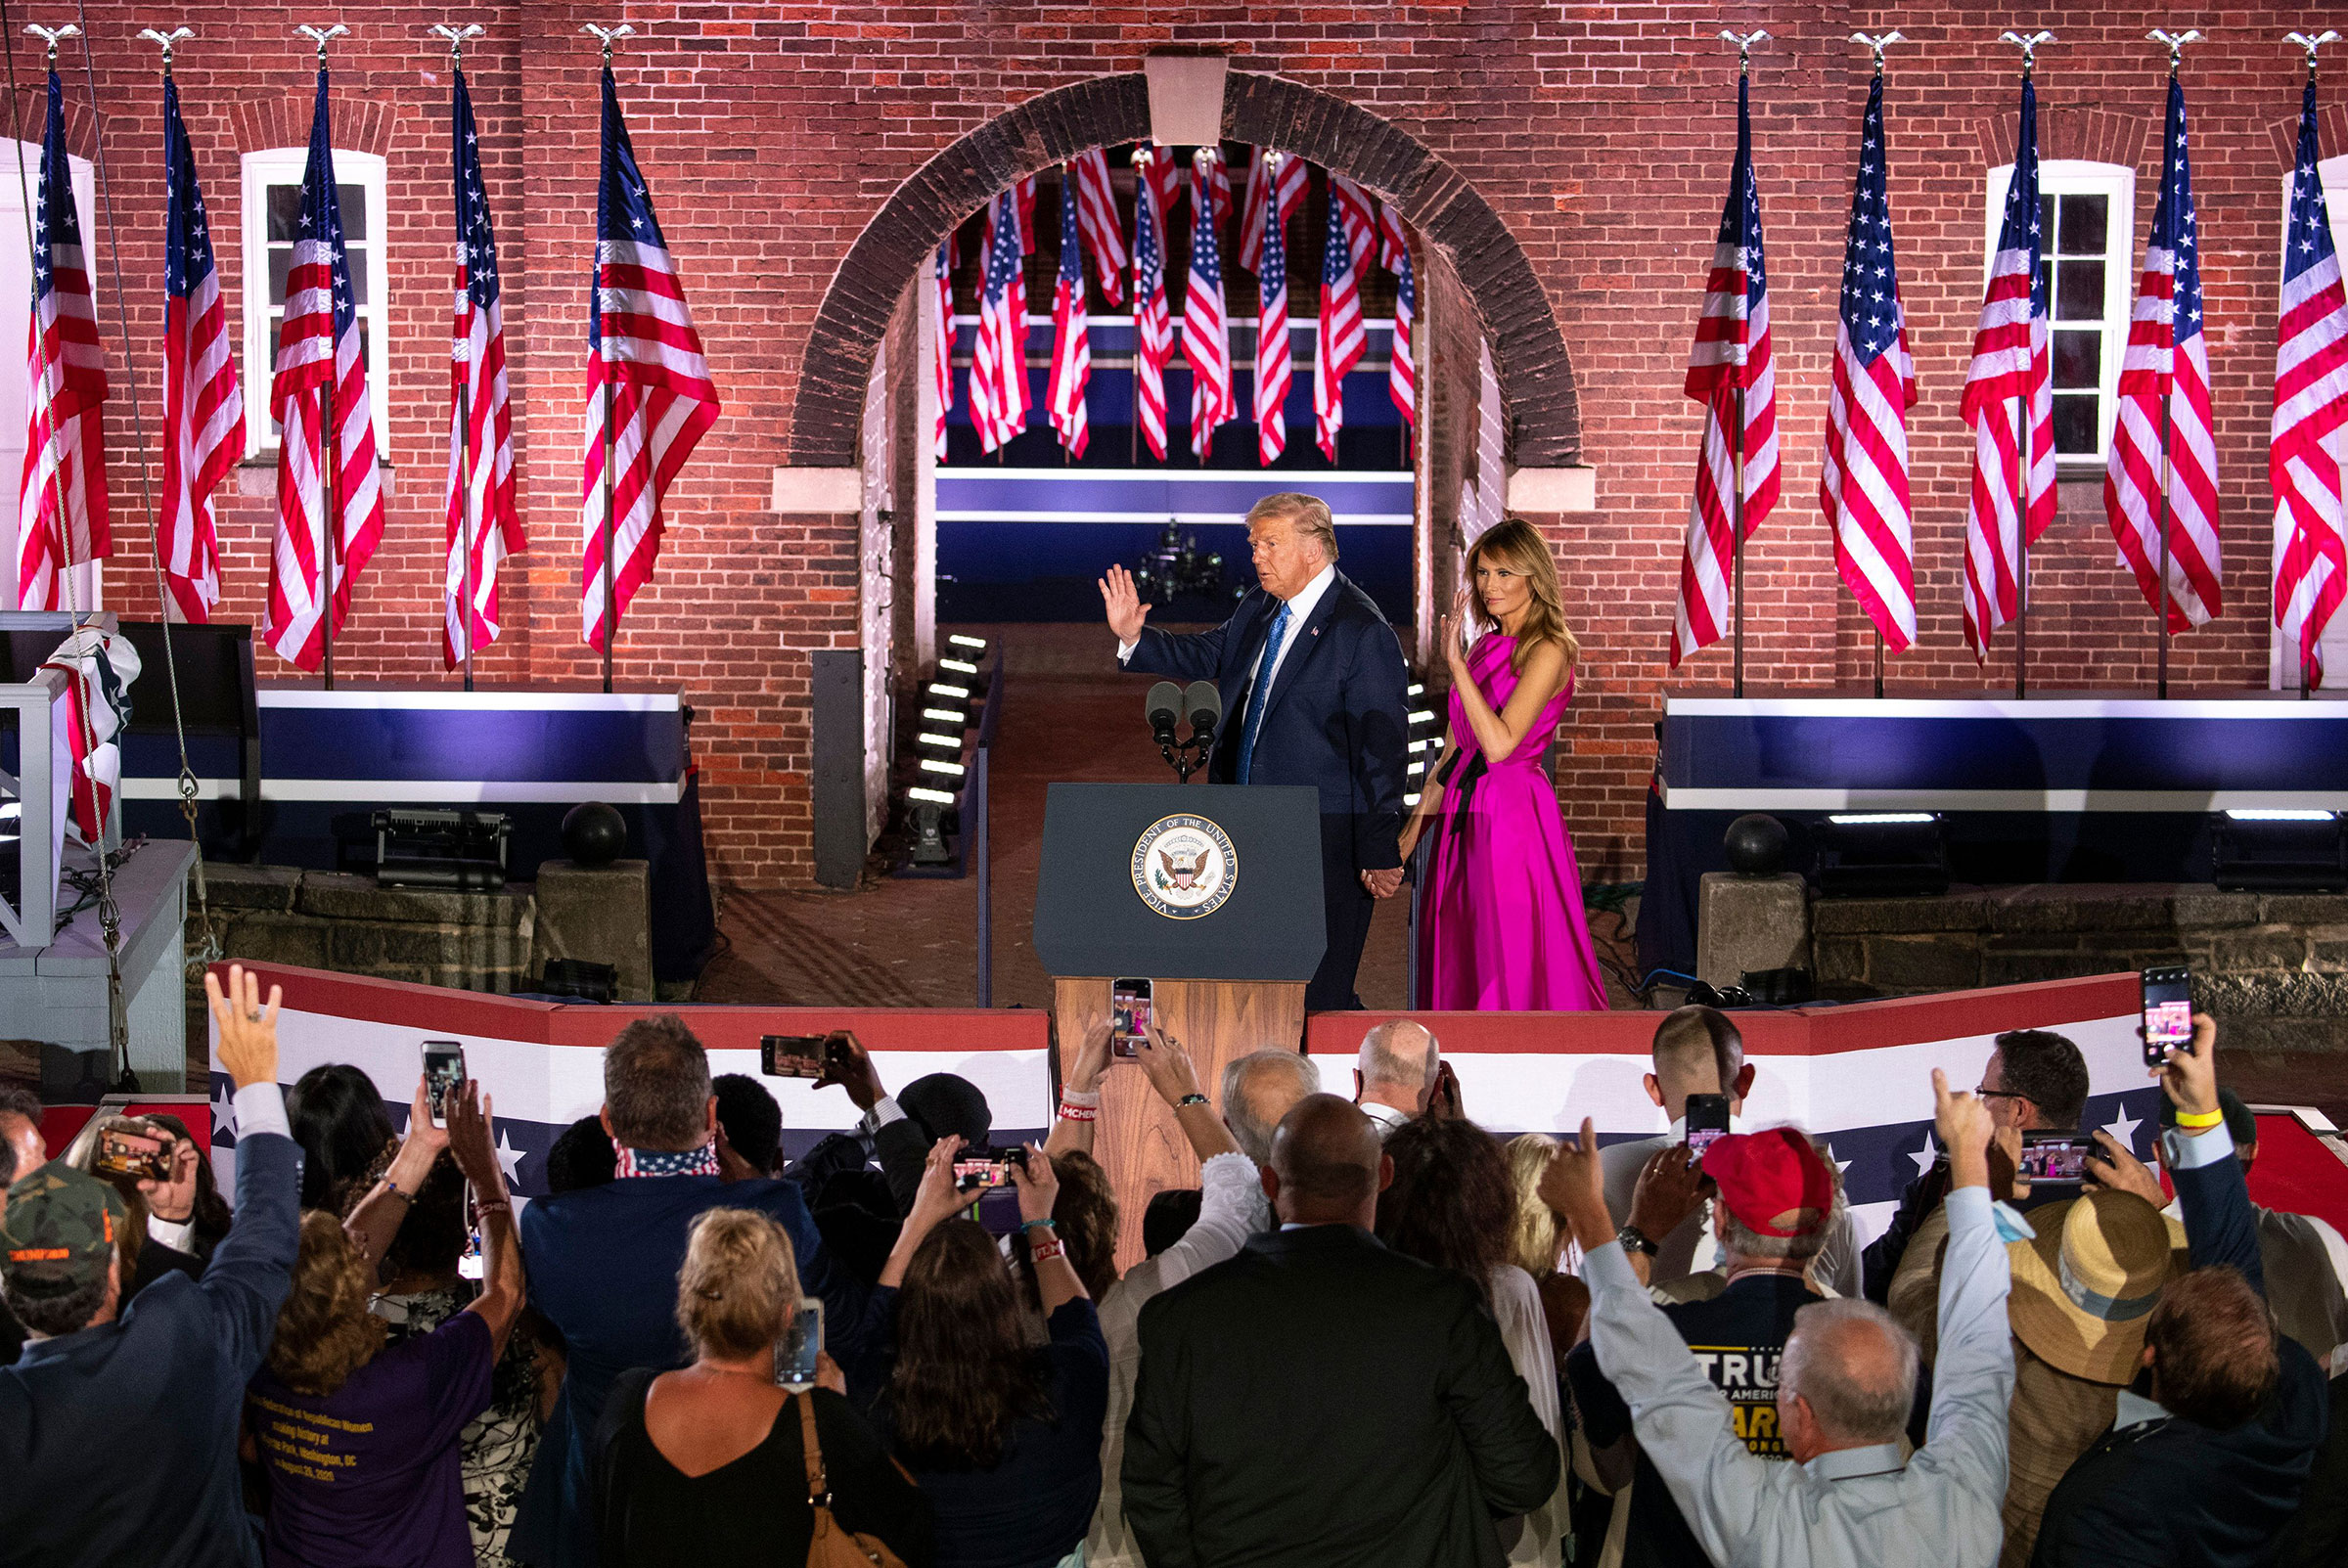 President Donald Trump and First Lady Melania Trump wave to supporters after attending the third night of the Republican National Convention, at Ft. McHenry in Baltimore, on Aug. 26, 2020.